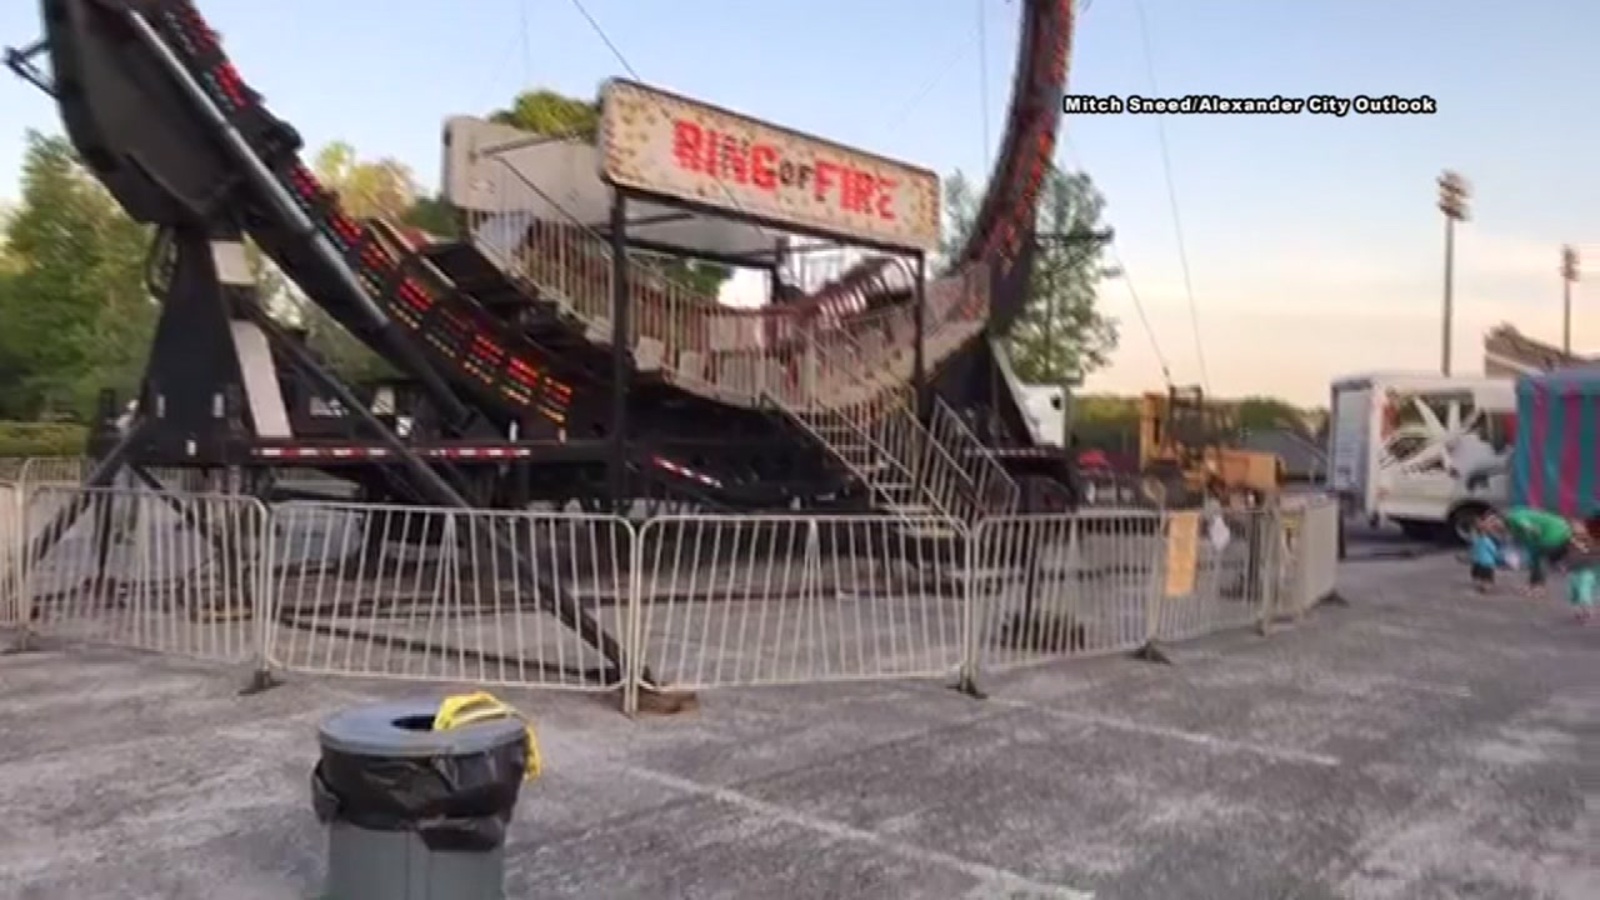 Reports: Man falls to his death after inspecting fair ride ...